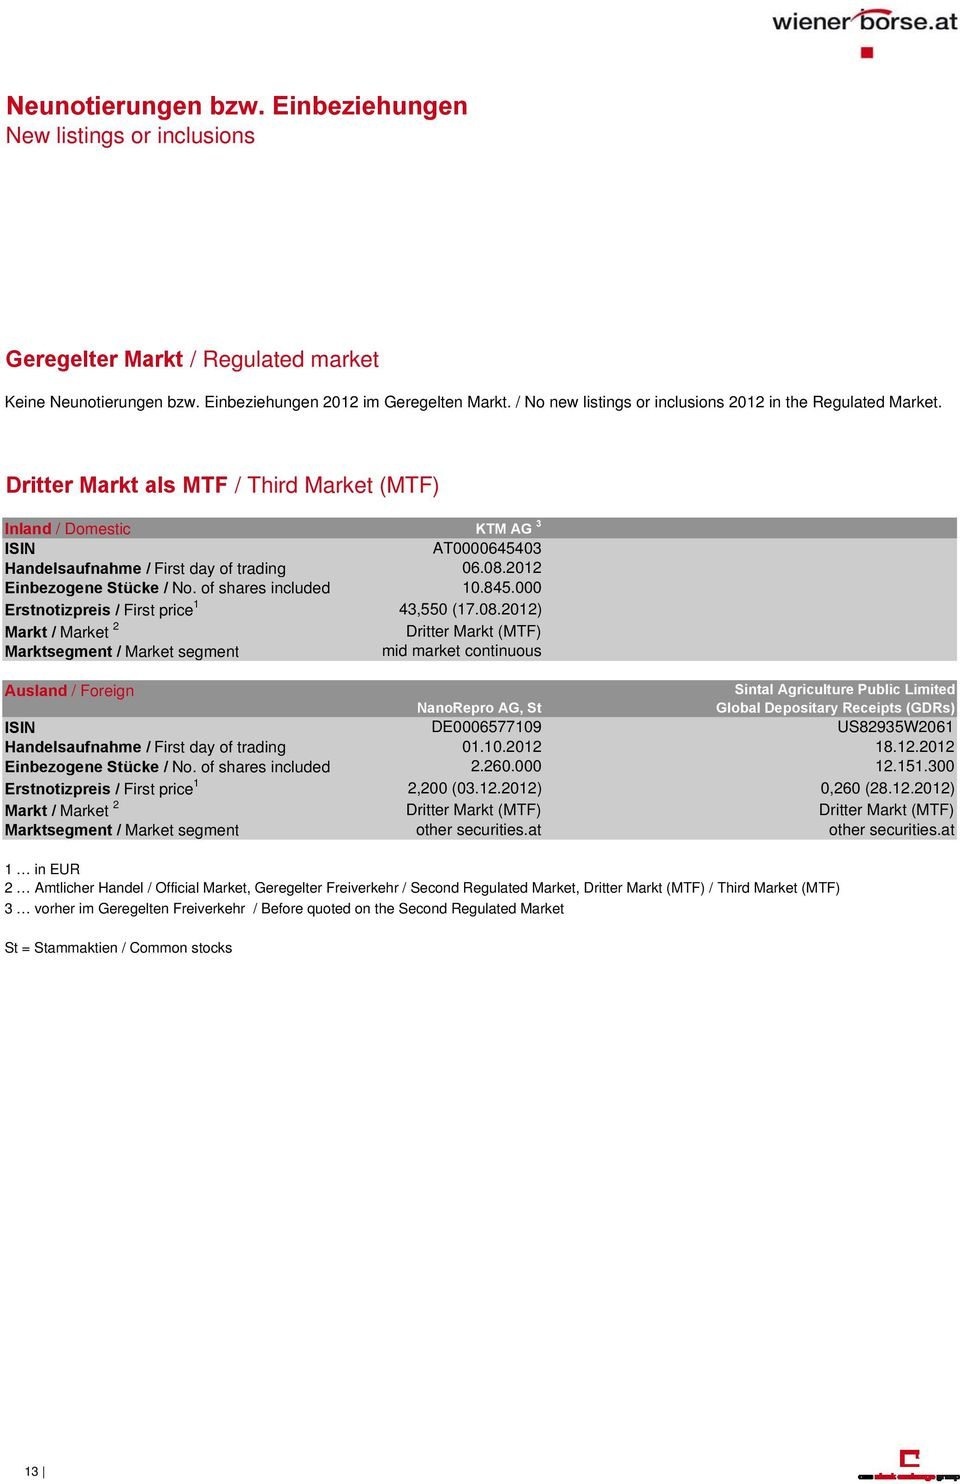 2012 Einbezogene Stücke / No. of shares included 10.845.000 Erstnotizpreis / First price 1 43,550 (17.08.